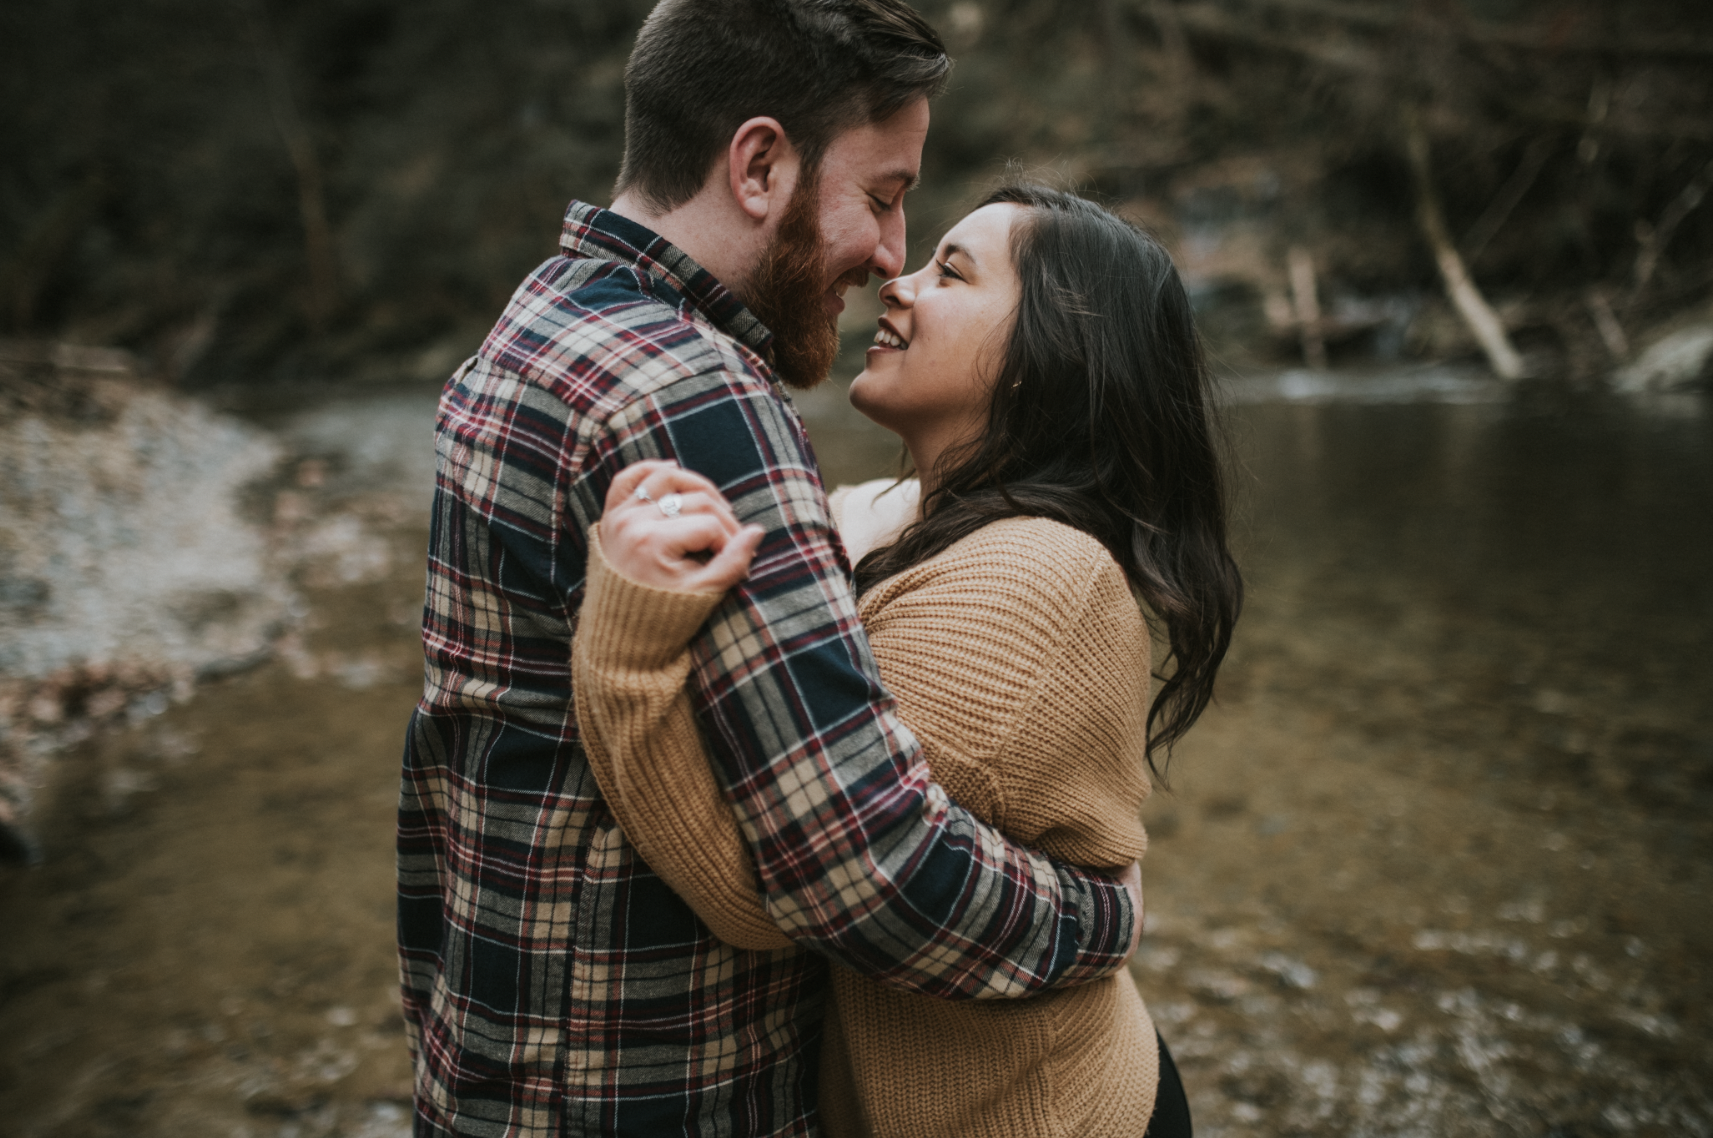 matt-natalia-winter-woods-engagement-session-pennsylvania-wedding-photographer-29